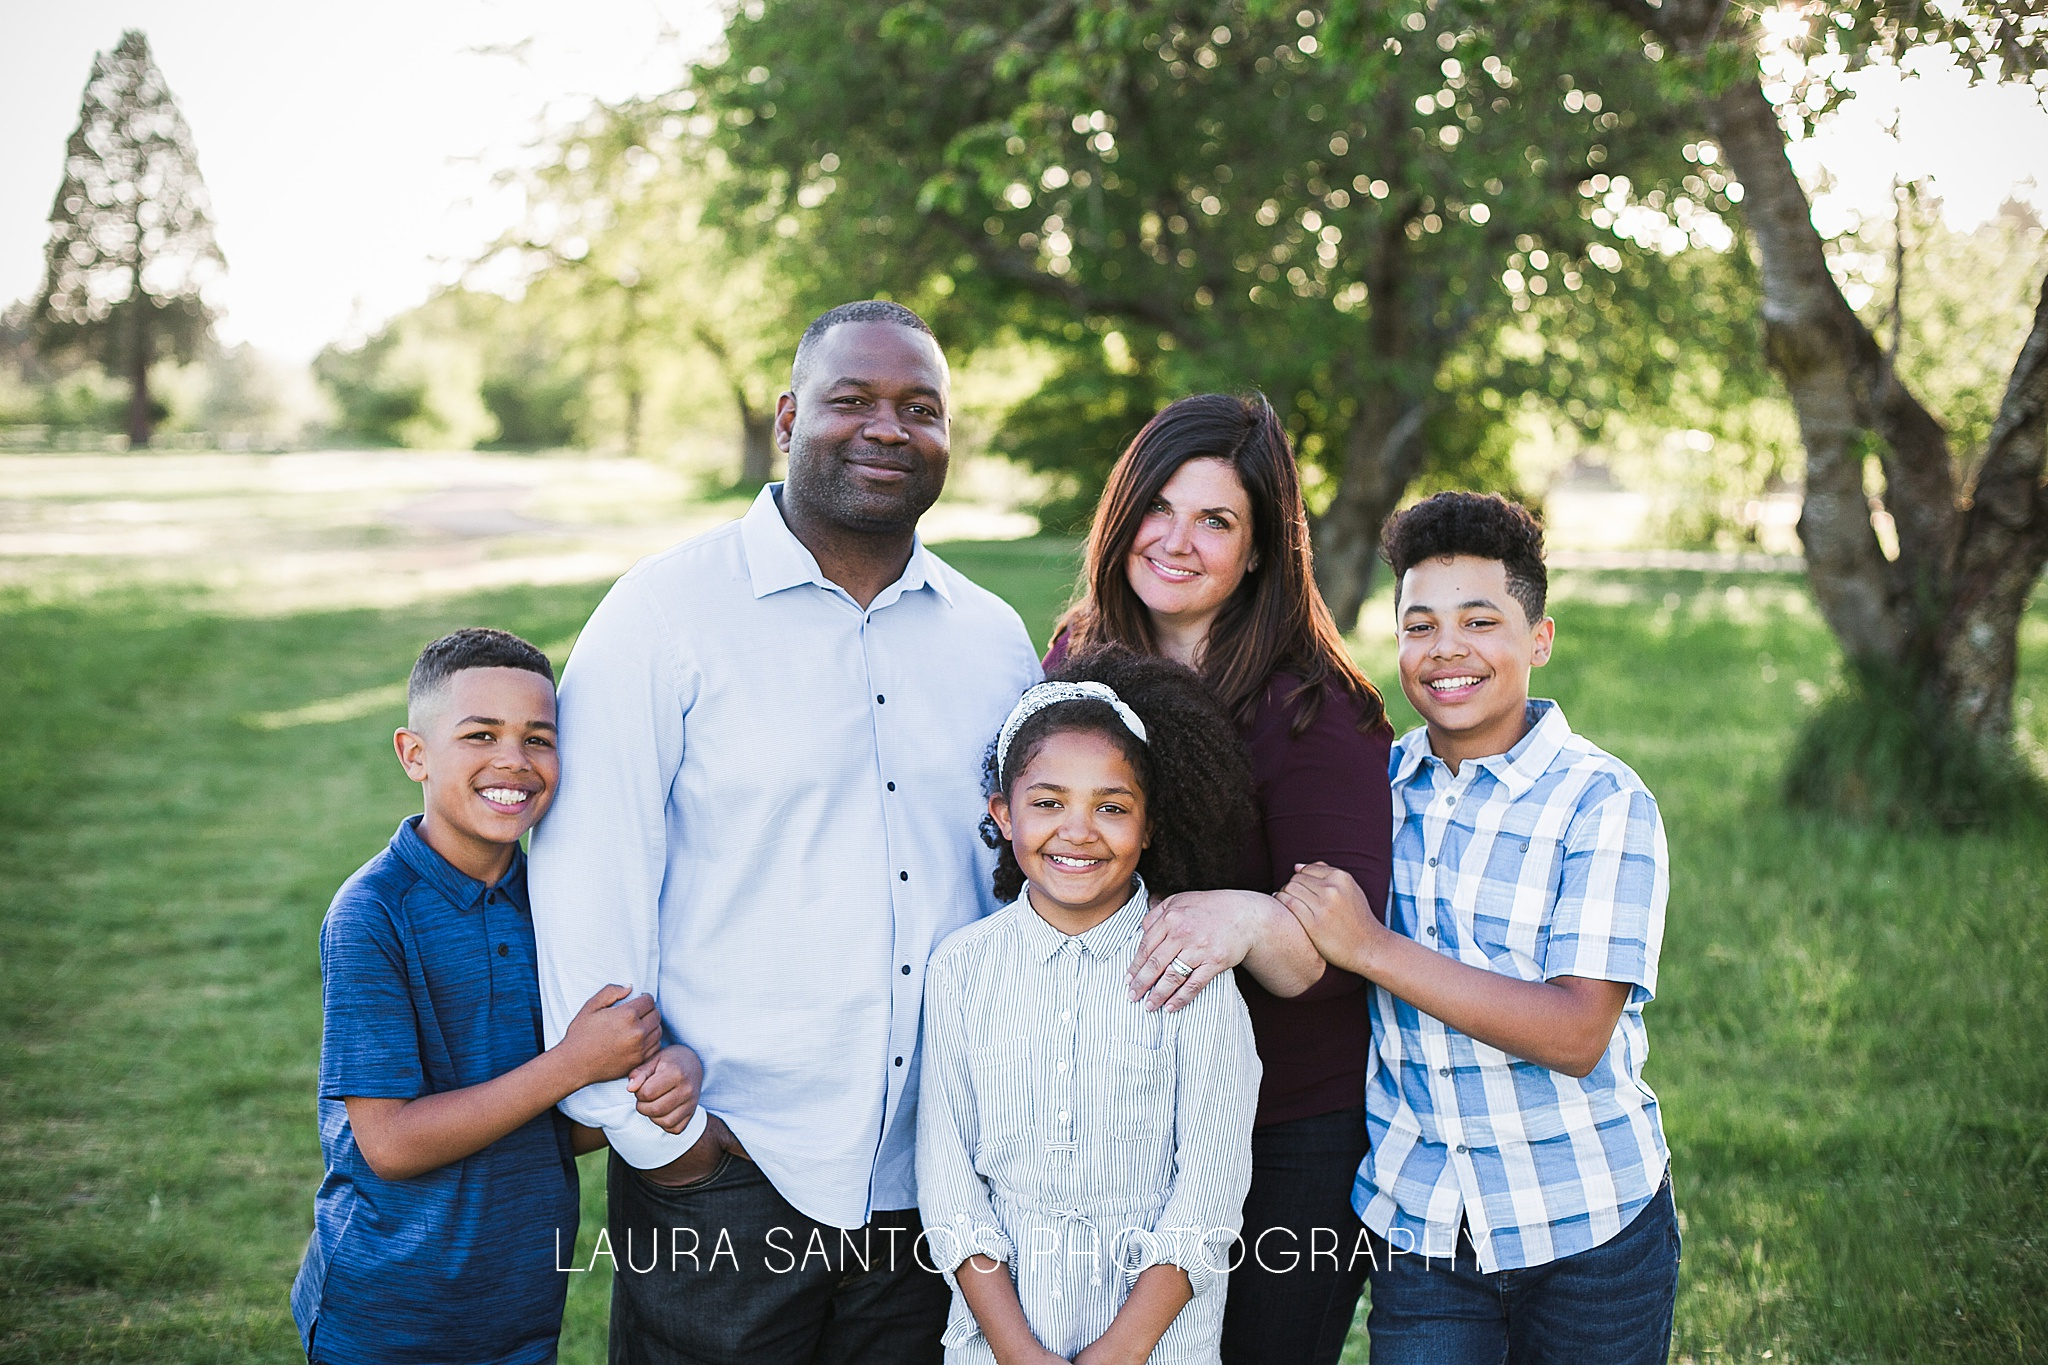 Laura Santos Photography Portland Oregon Family Photographer_0954.jpg